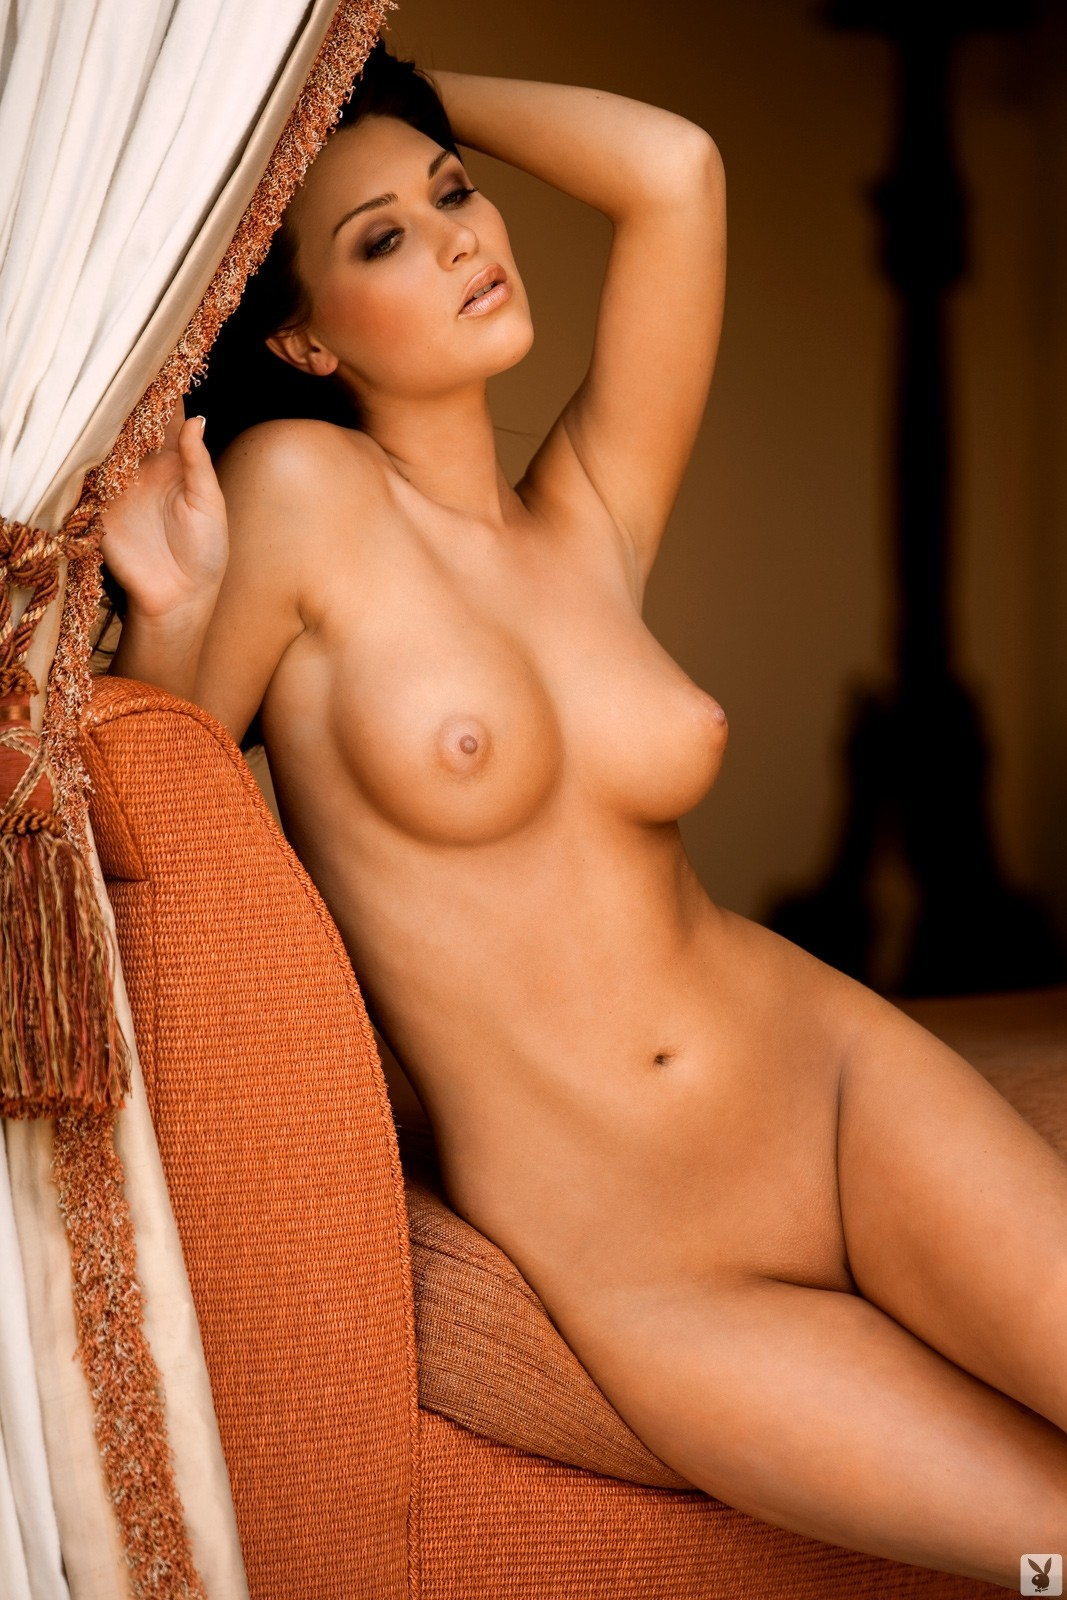 images-of-very-beautiful-naked-women